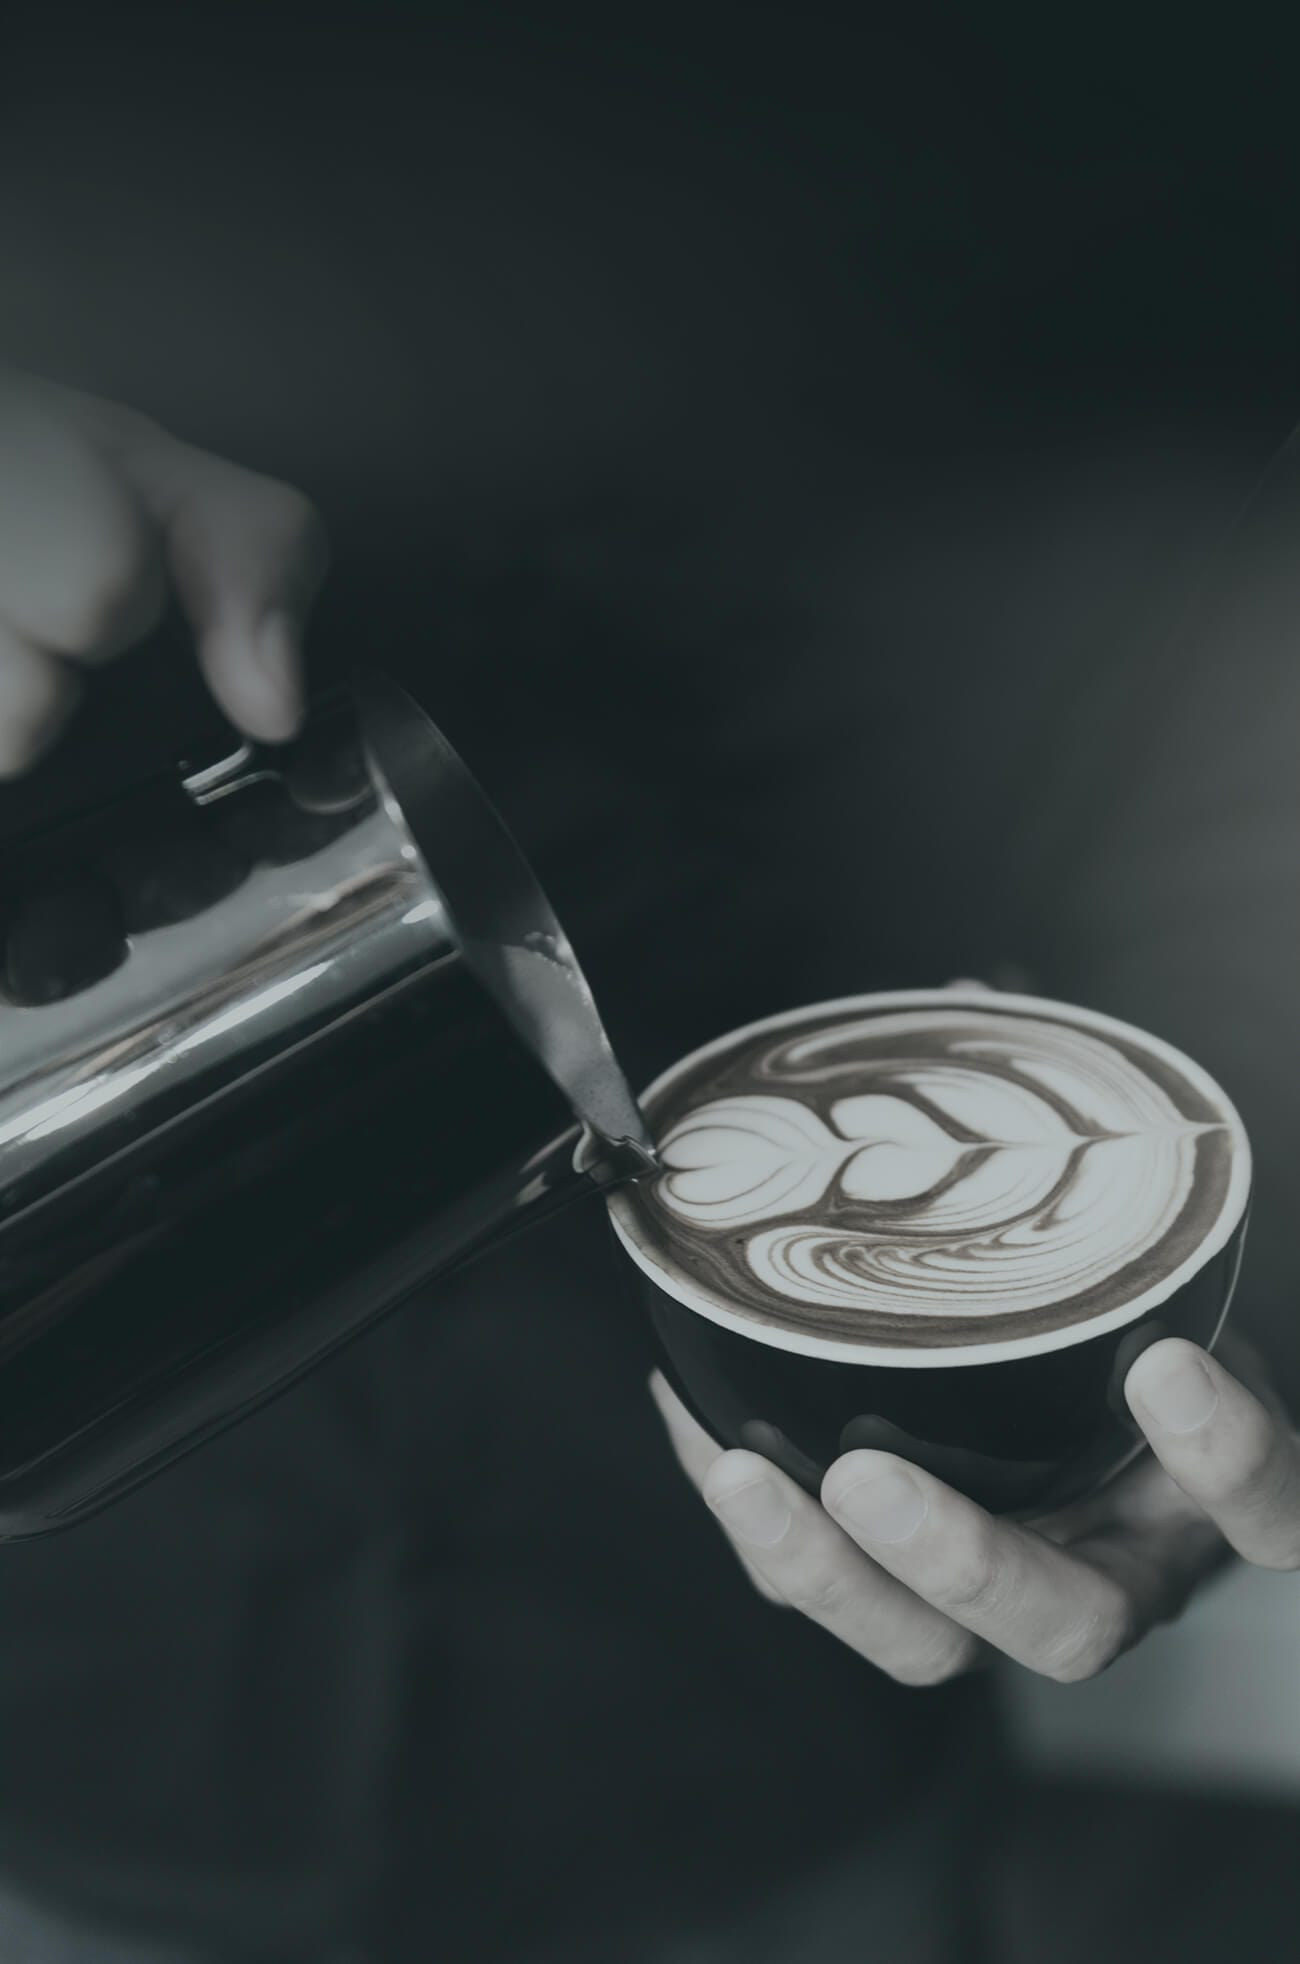 Dartcor Food Services Corporate Dining Team prepares latte with foam design